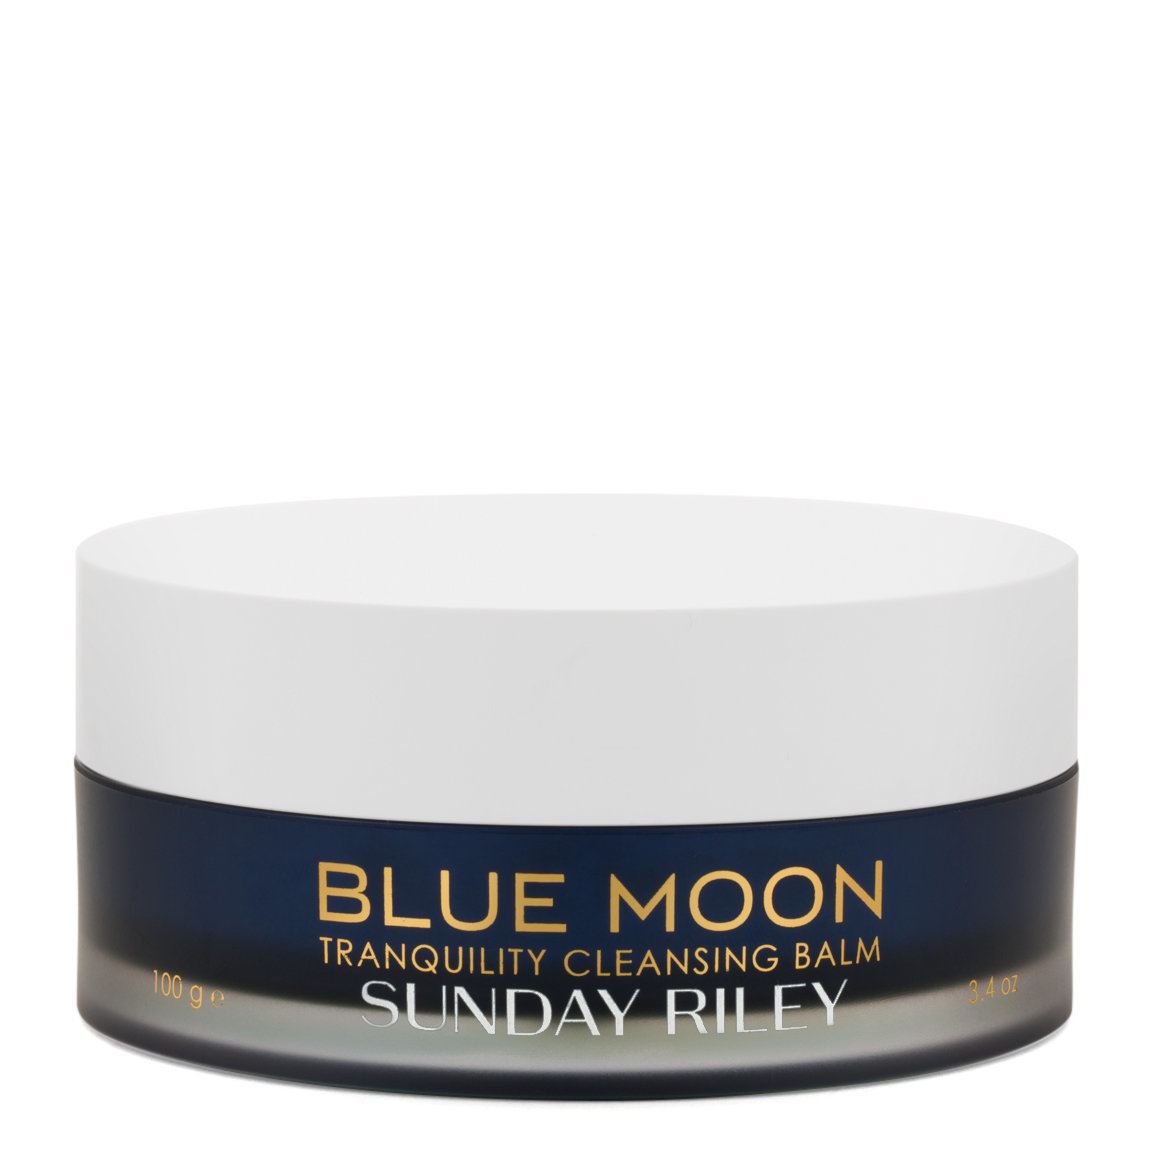 Sunday Riley Blue Moon Tranquility Cleansing Balm product smear.